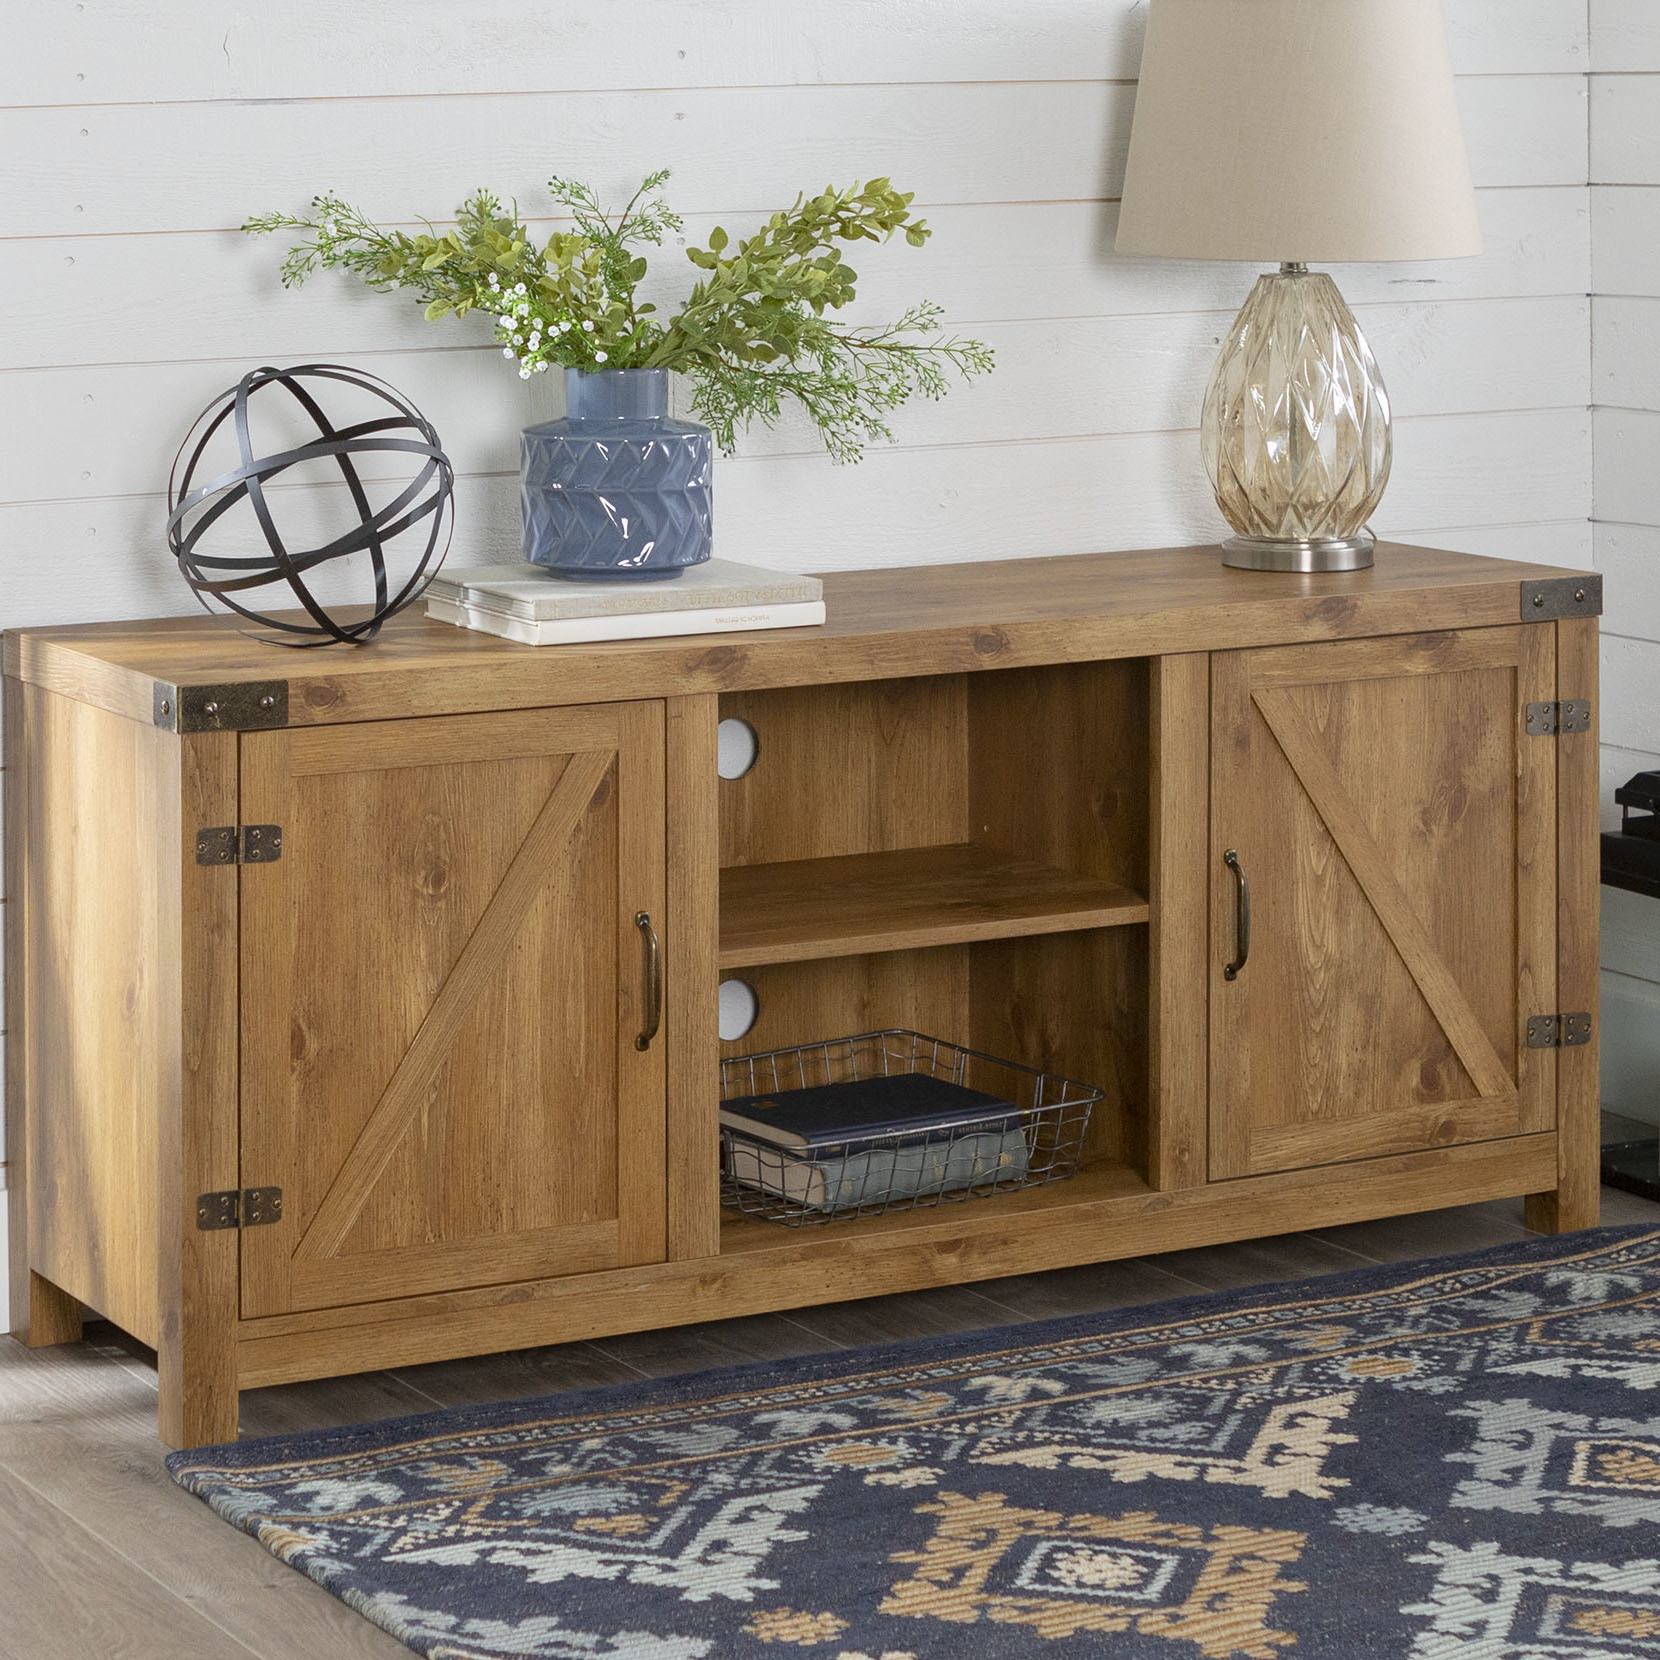 Wayfair Pertaining To Tv Stand Coffee Table Sets (Gallery 9 of 20)